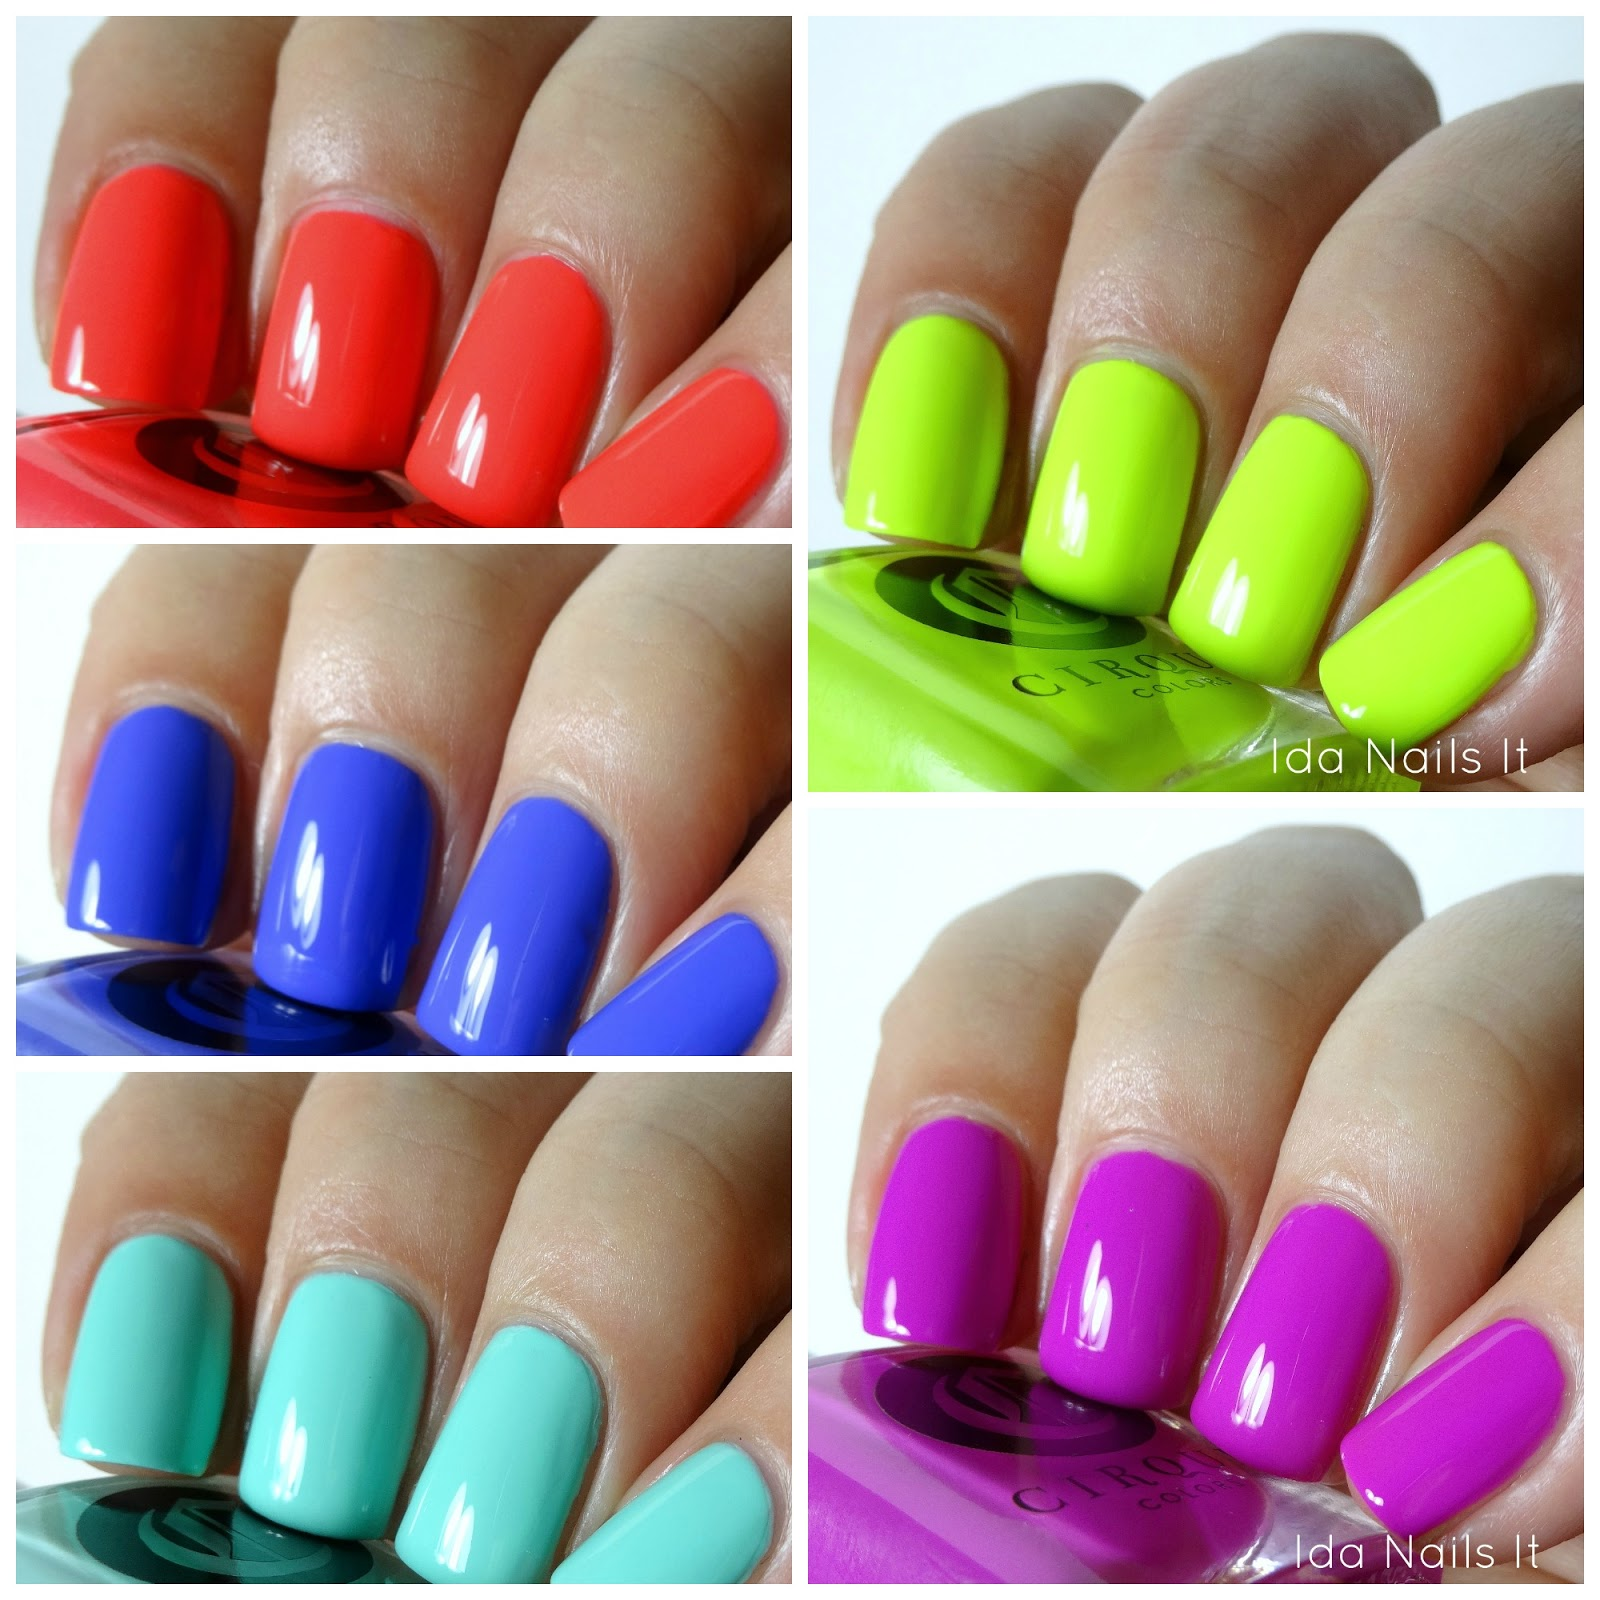 Ida Nails It: Cirque Colors Vice 2016 Collection: Swatches and Review